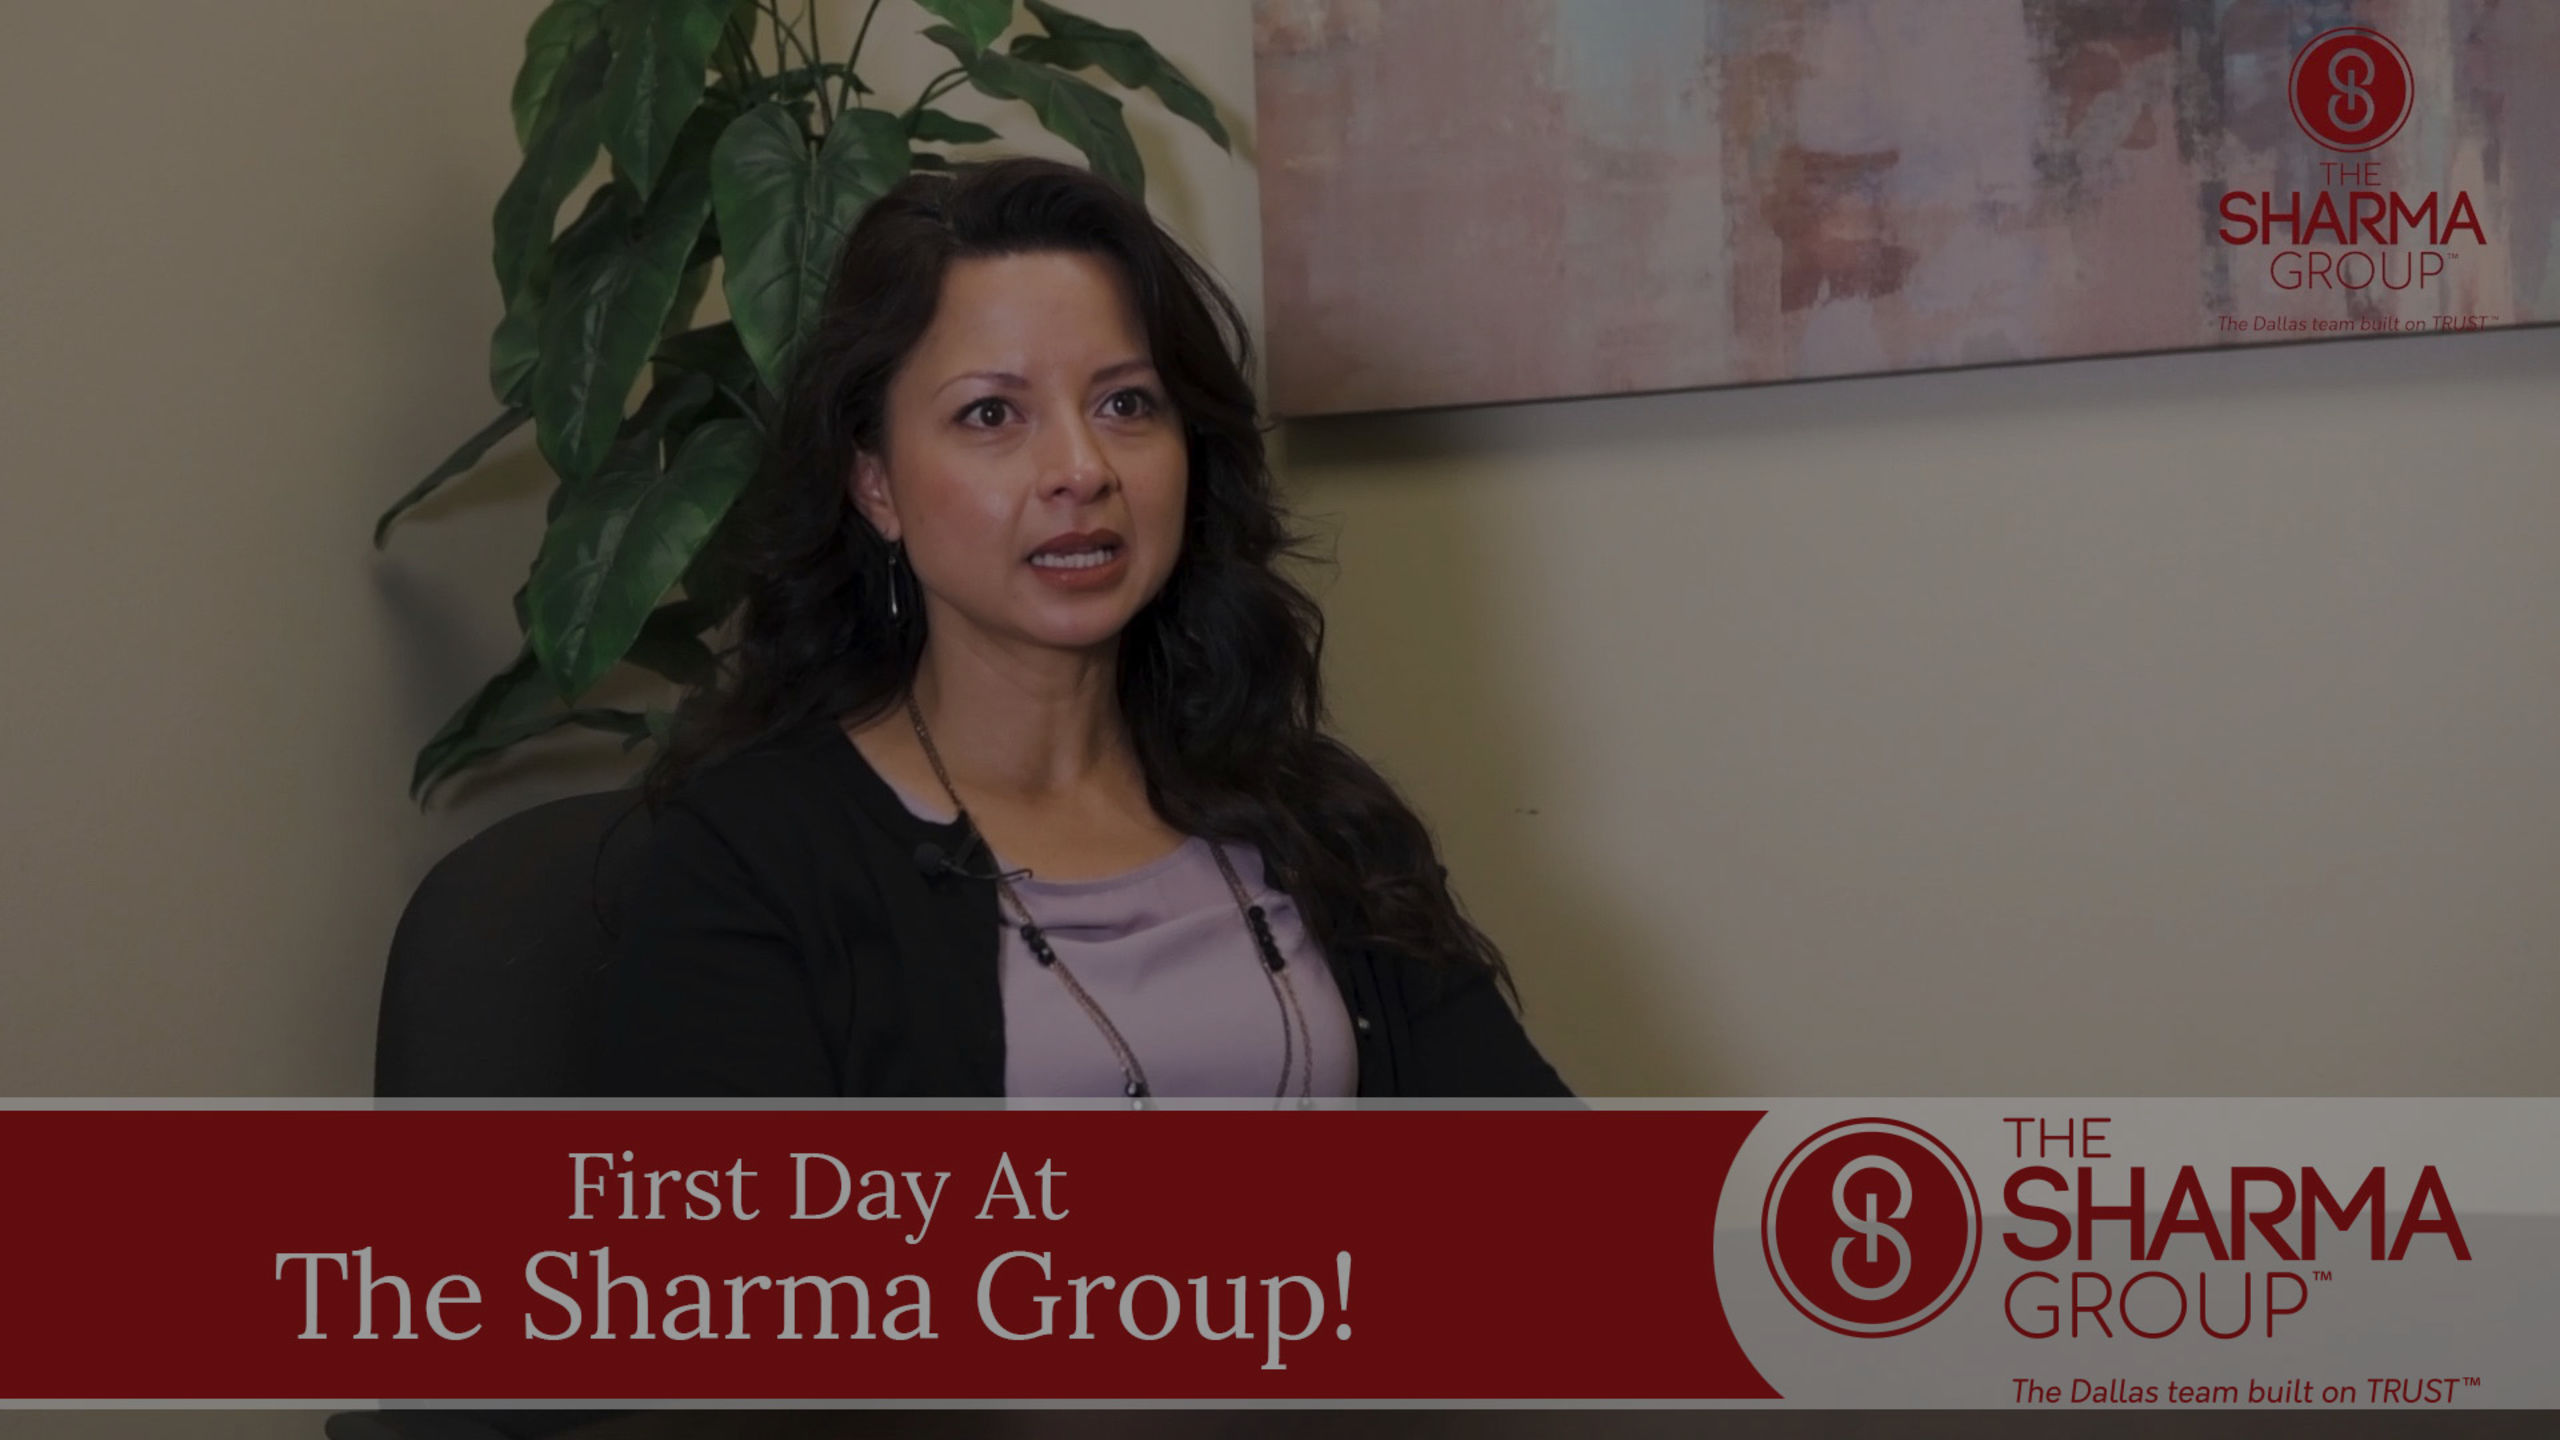 A Peek inside Day 1 At The Sharma Group